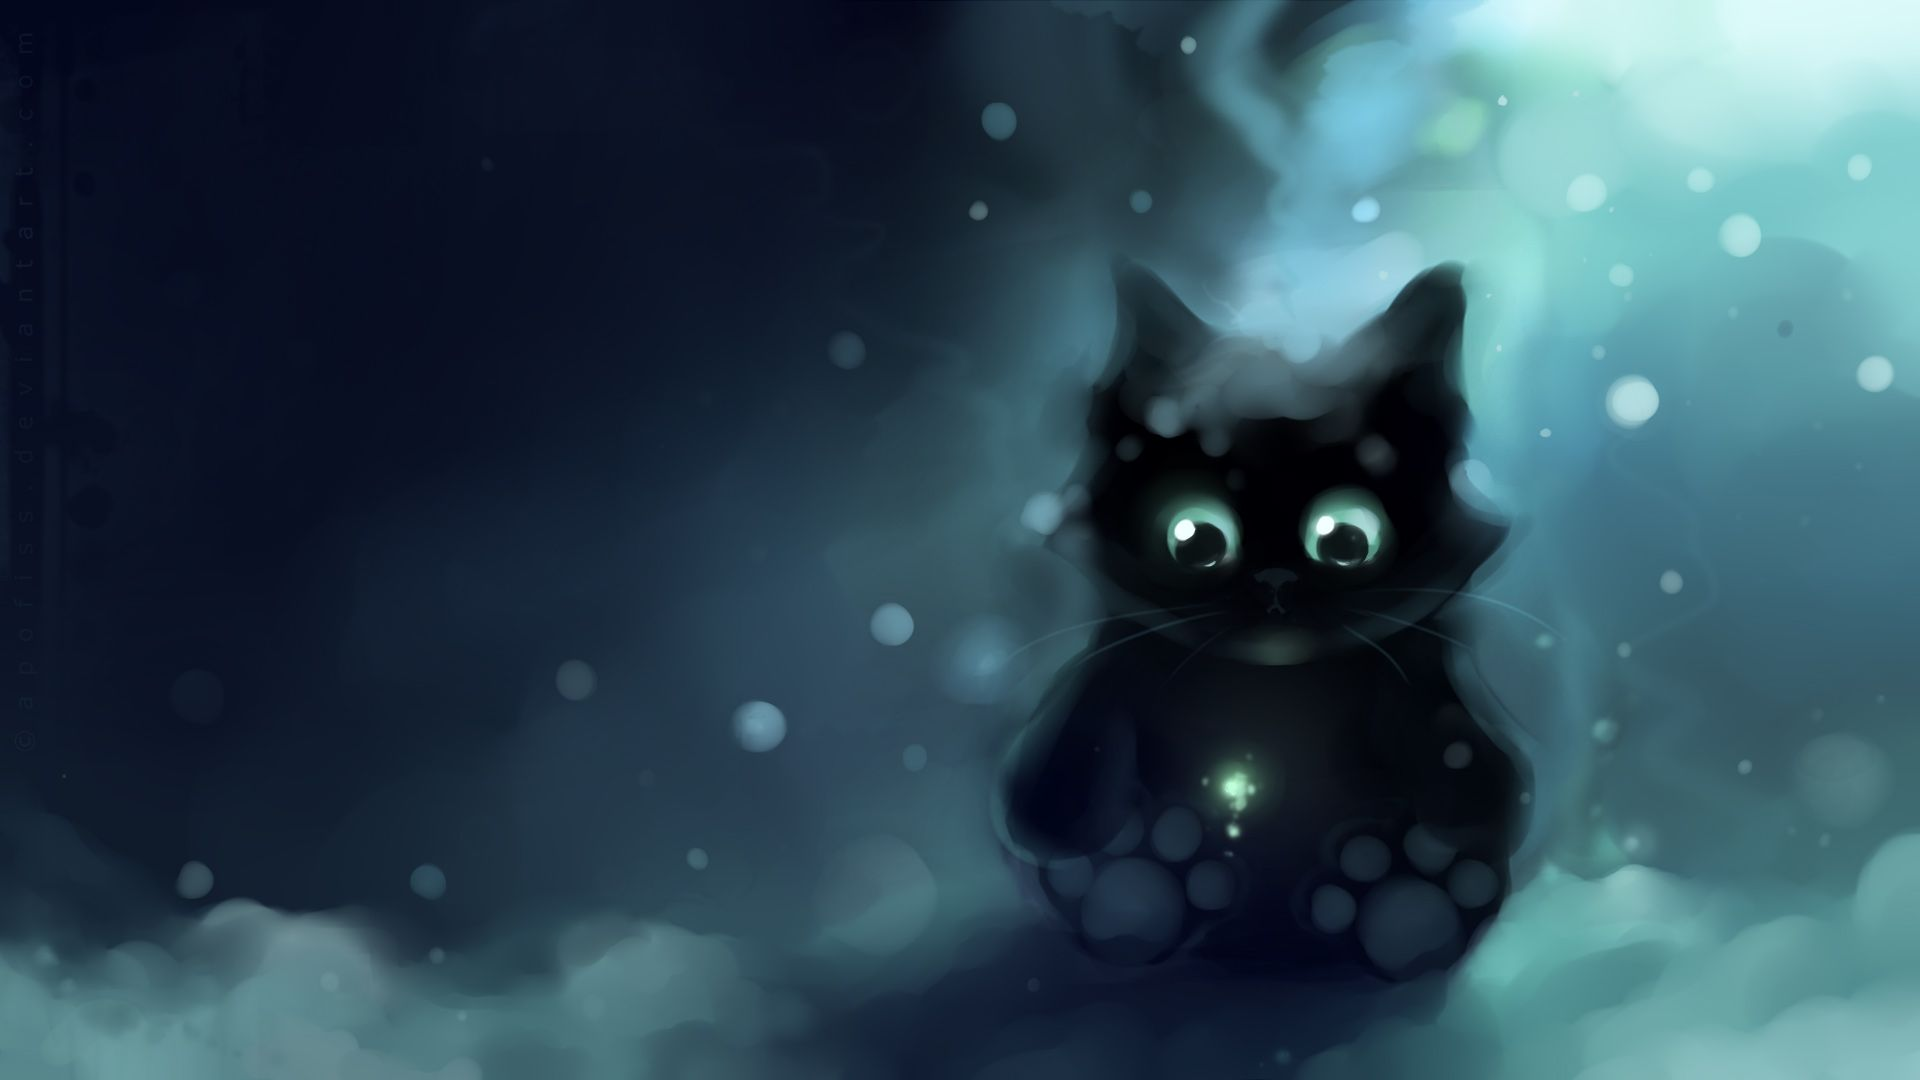 Apofiss Animals Images Black Kitty 2 Hd Wallpaper And Background Photos Cute Anime Cat Cheshire Cat Wallpaper Cat Art